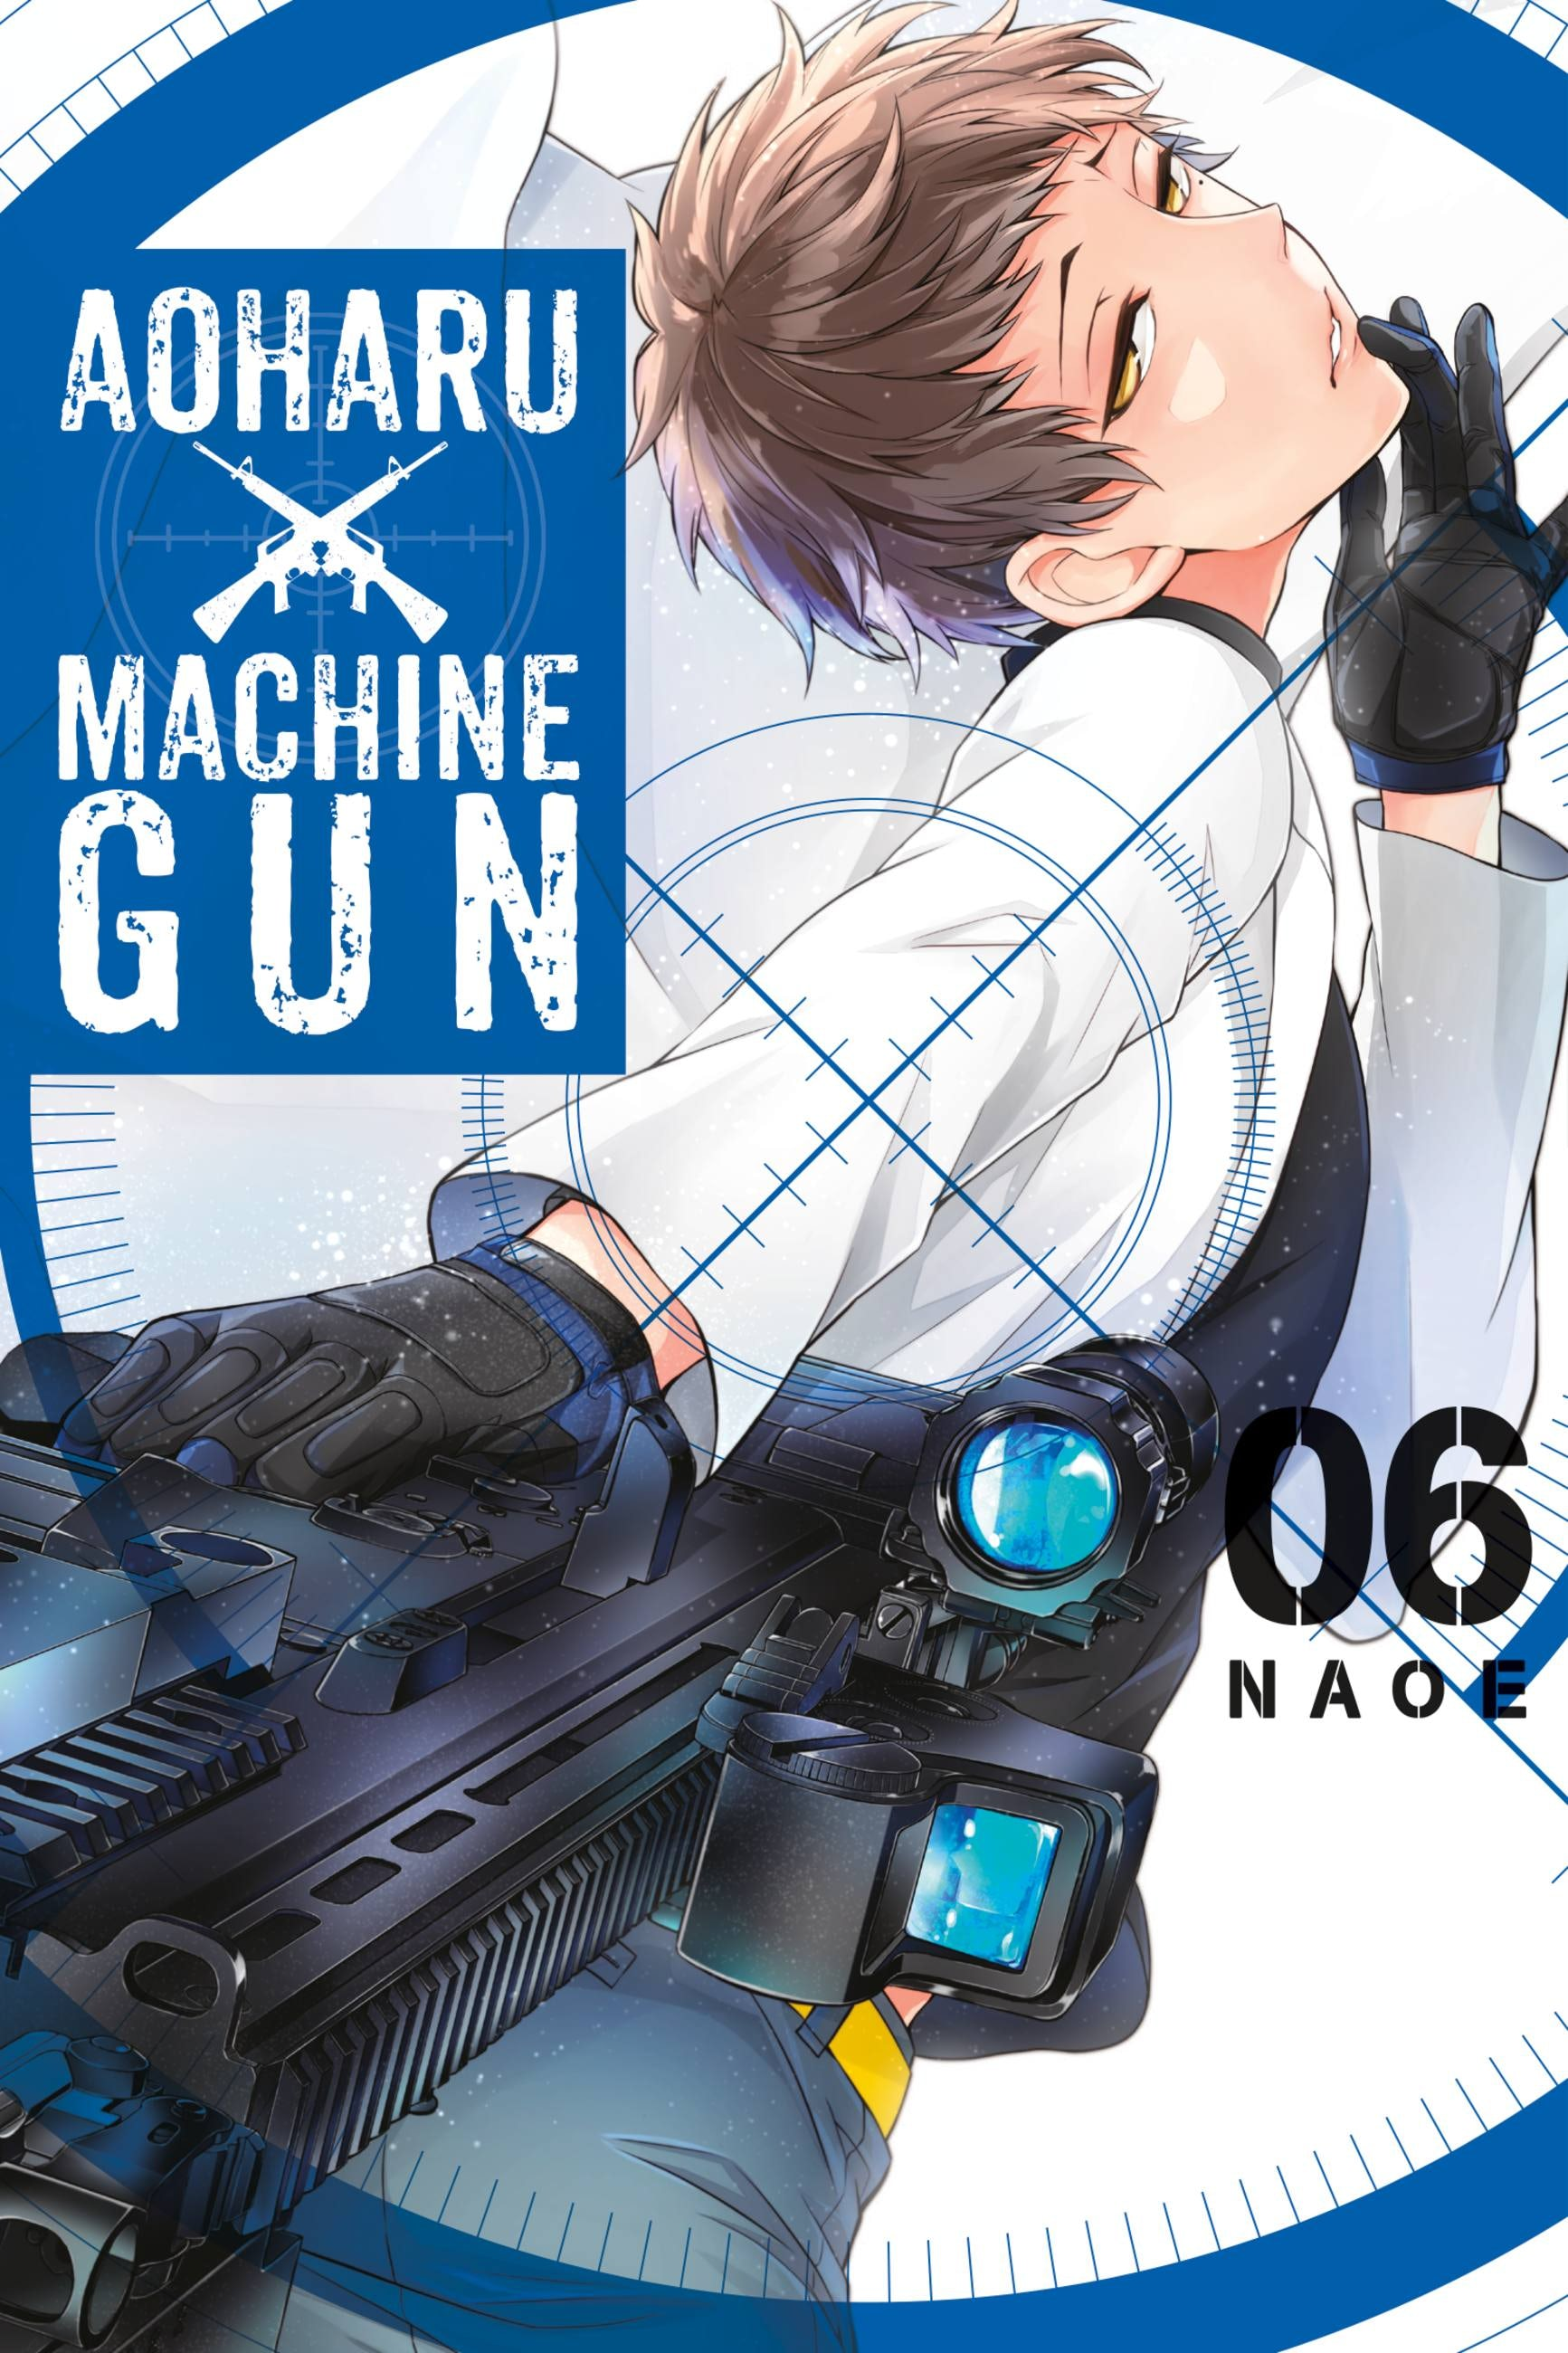 Aoharu X Machinegun 14 Vol